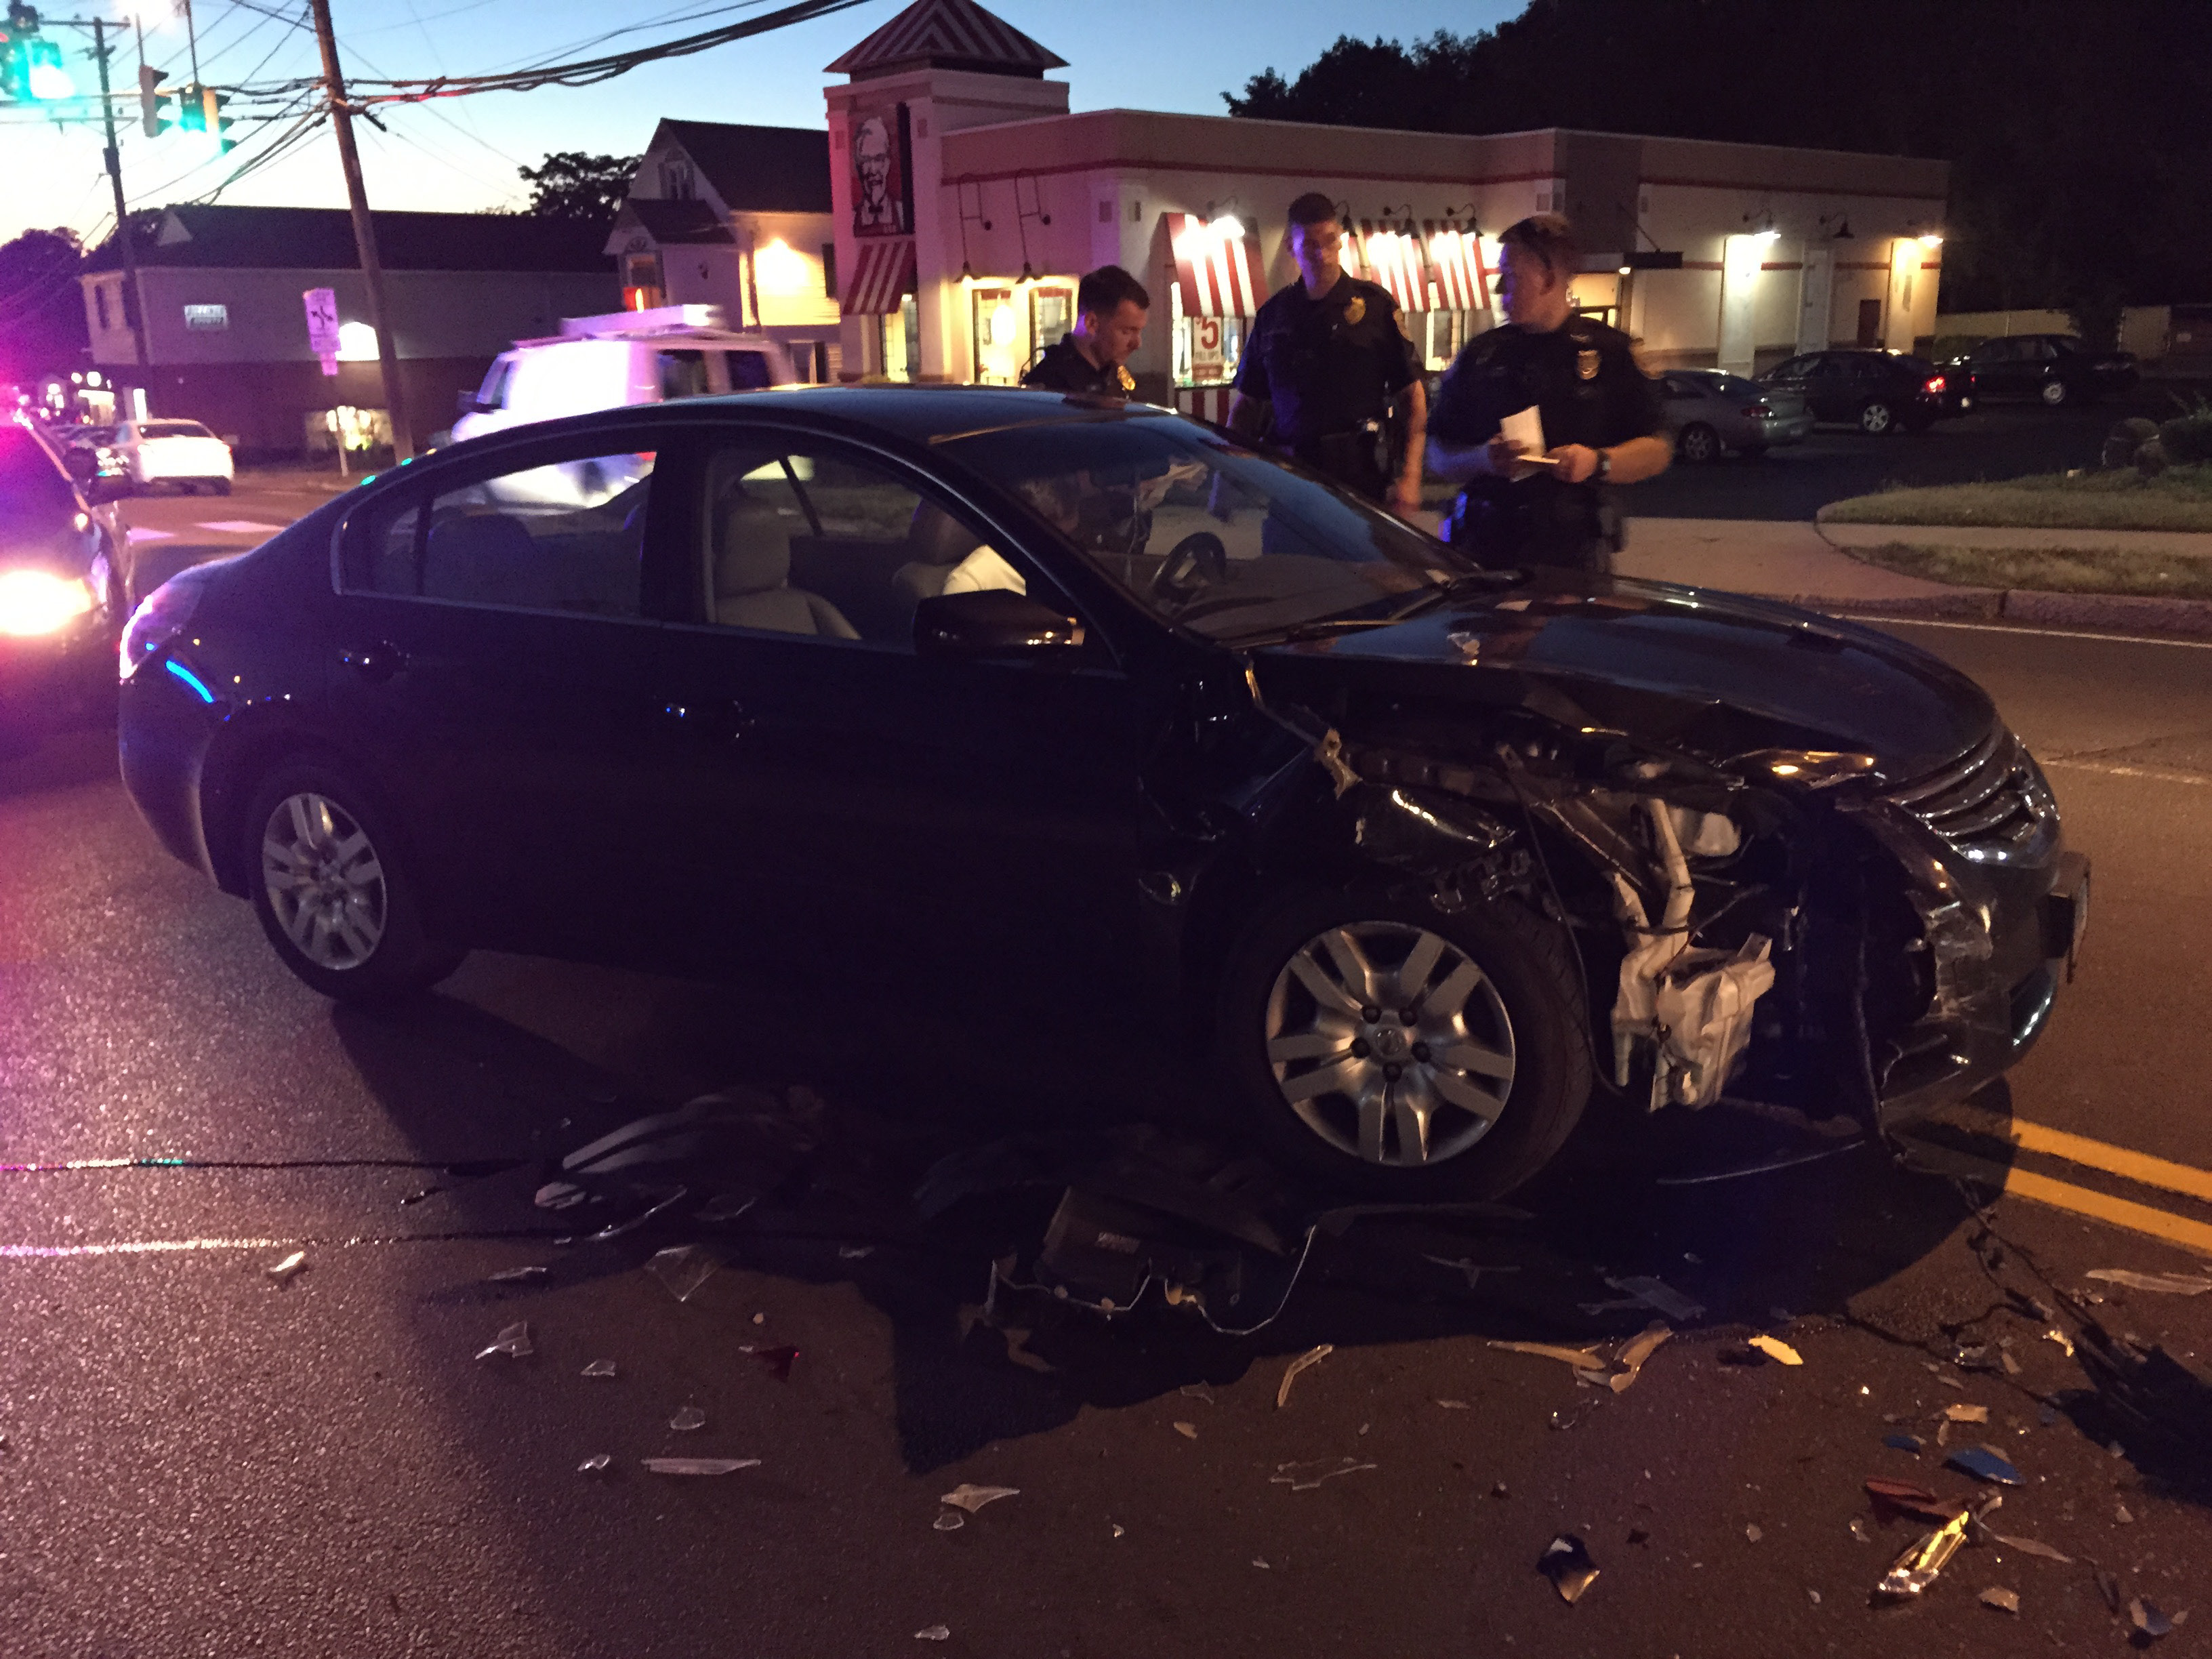 Meriden Three Cars Collided On East Main Street In Front Of